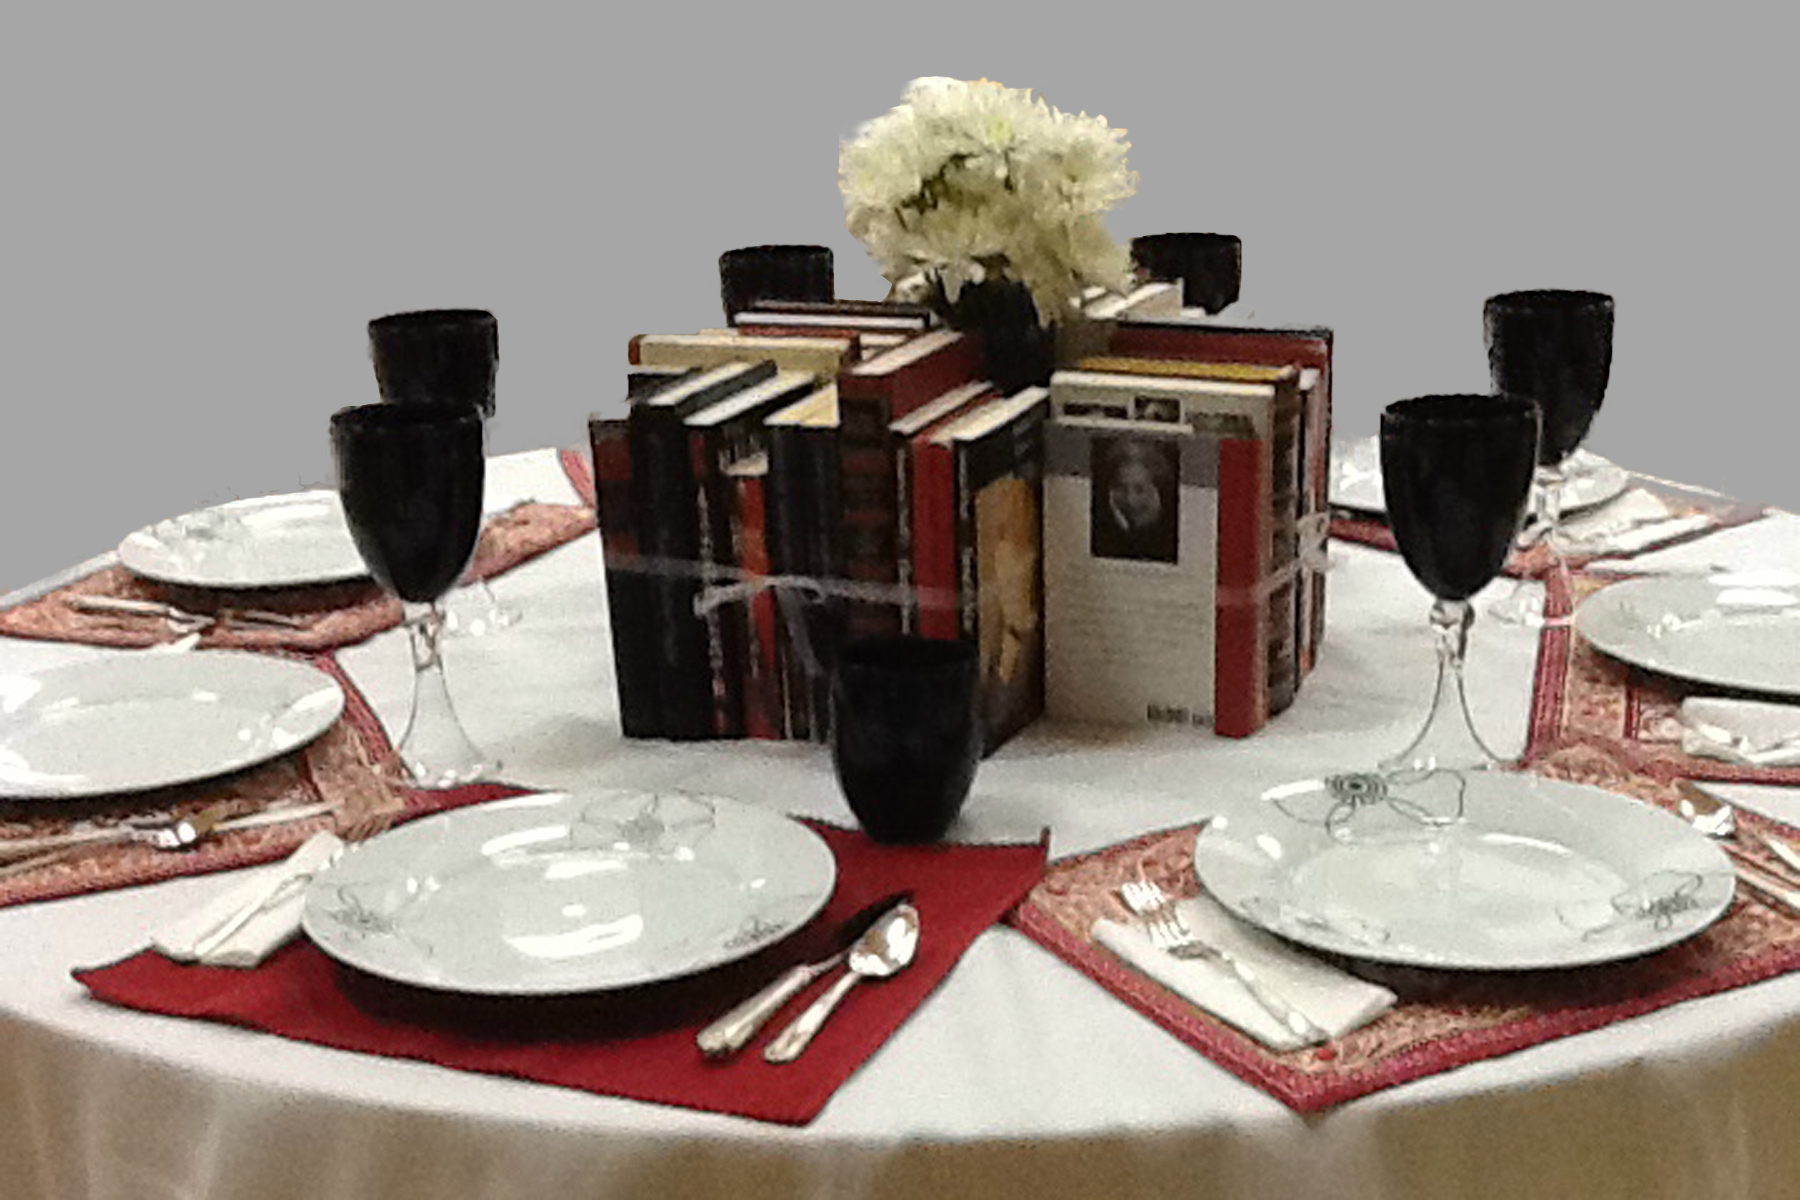 Black History Centerpiece Ideas : Red black and white book centerpieces the bookshelf of